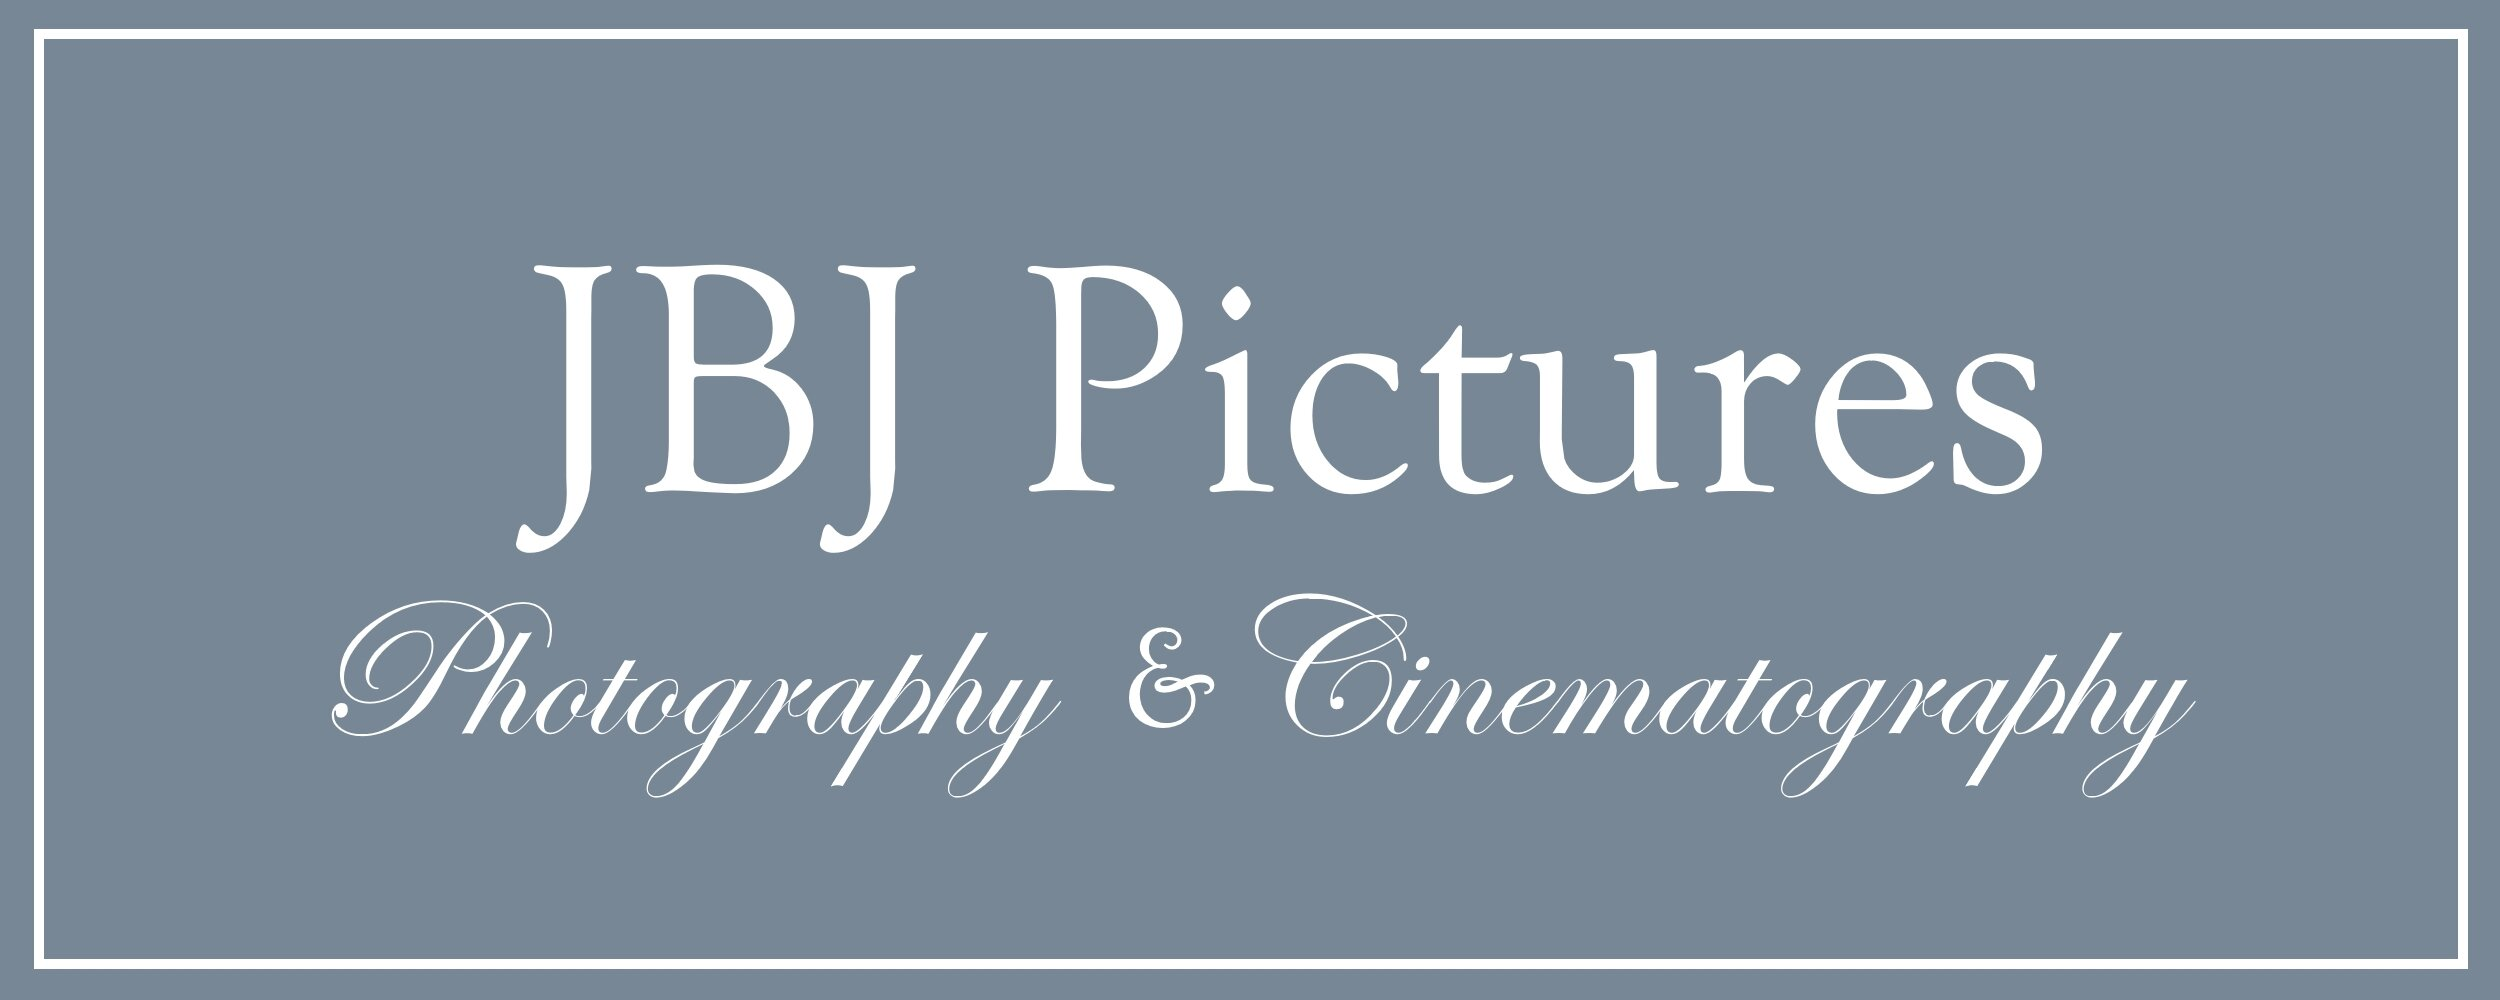 JBJ Pictures Logo - NEW 3 White  Text - Grey Background.jpg